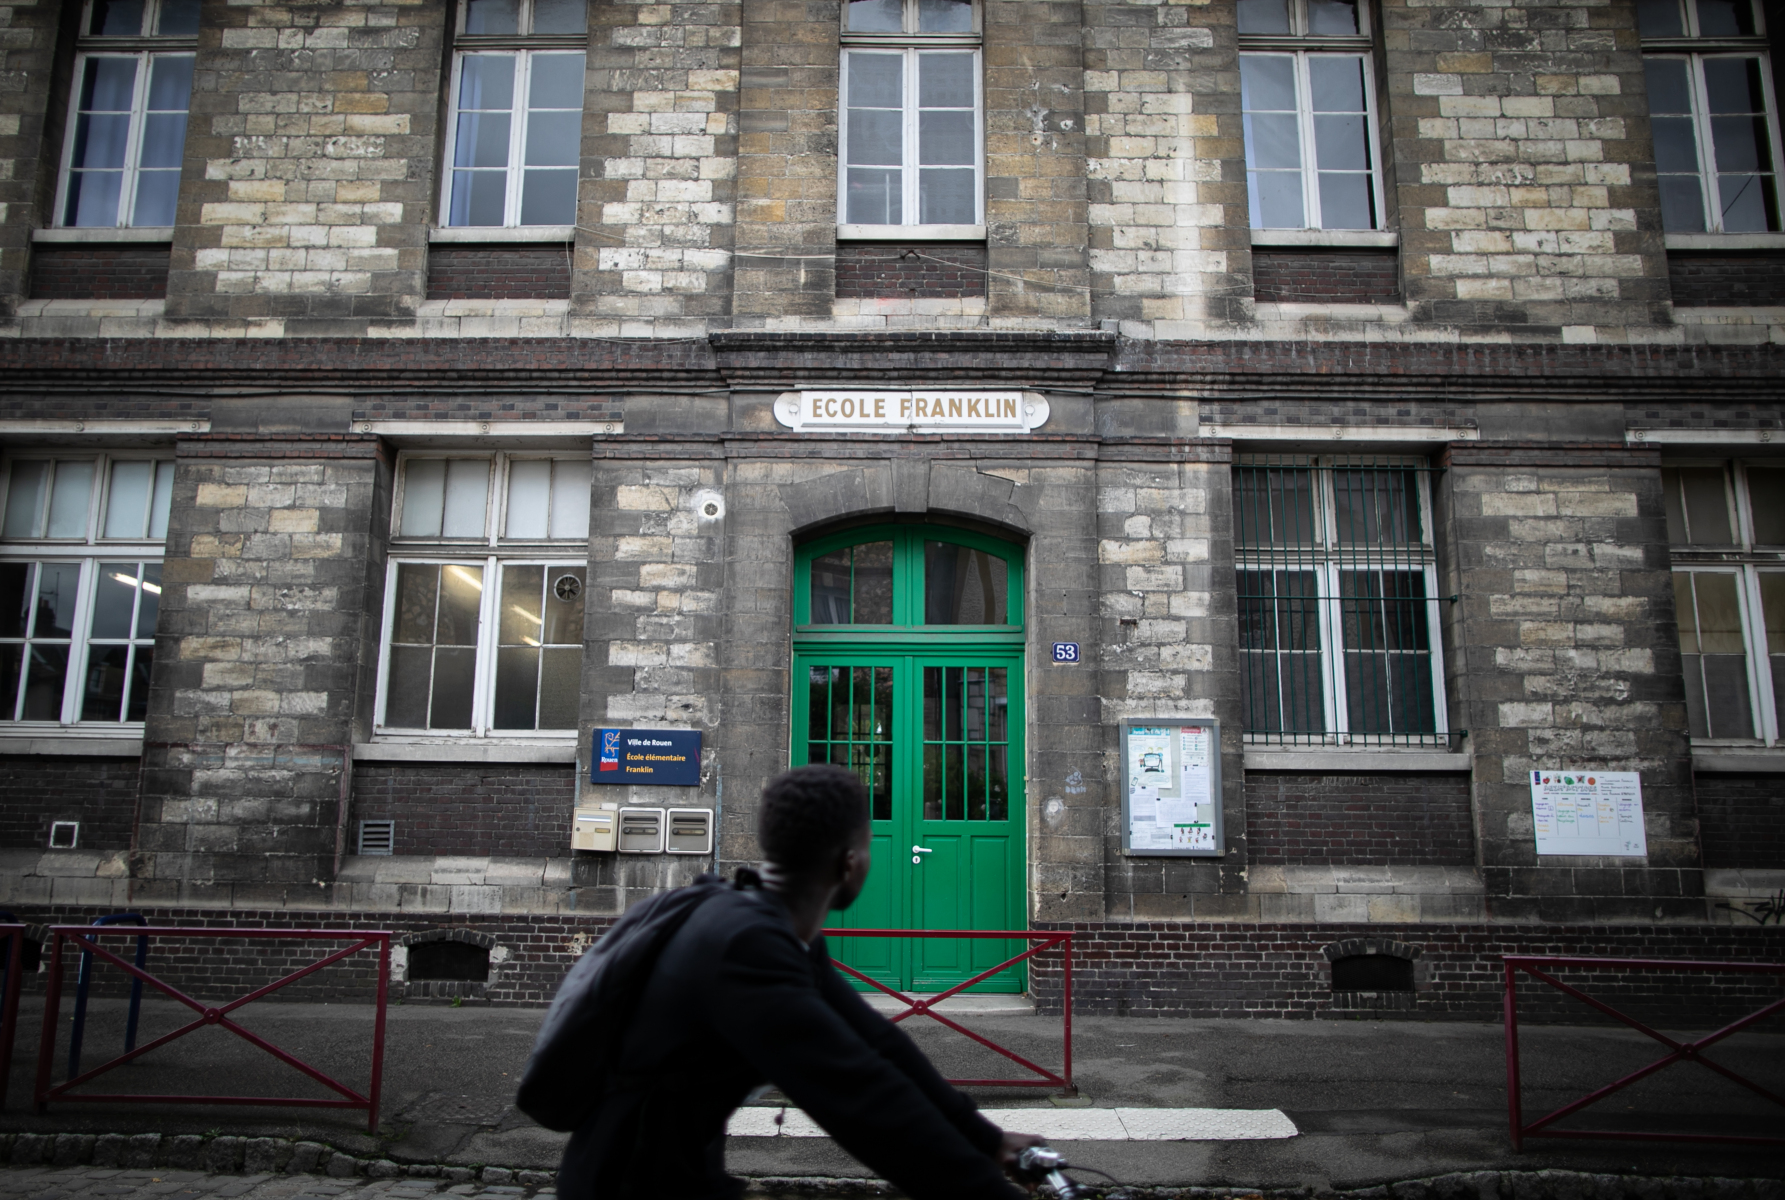 A child  rides past the Franklin school on October 1, 2019, in Rouen, northern France. Some schools advide parents th get back children home, on october 1, 2019. Schools were shuttered for two days and reopened on September 30, 2019. The huge blaze erupted on September 26 in a storage facility owned by Lubrizol, a manufacturer of industrial lubricants and fuel additives.